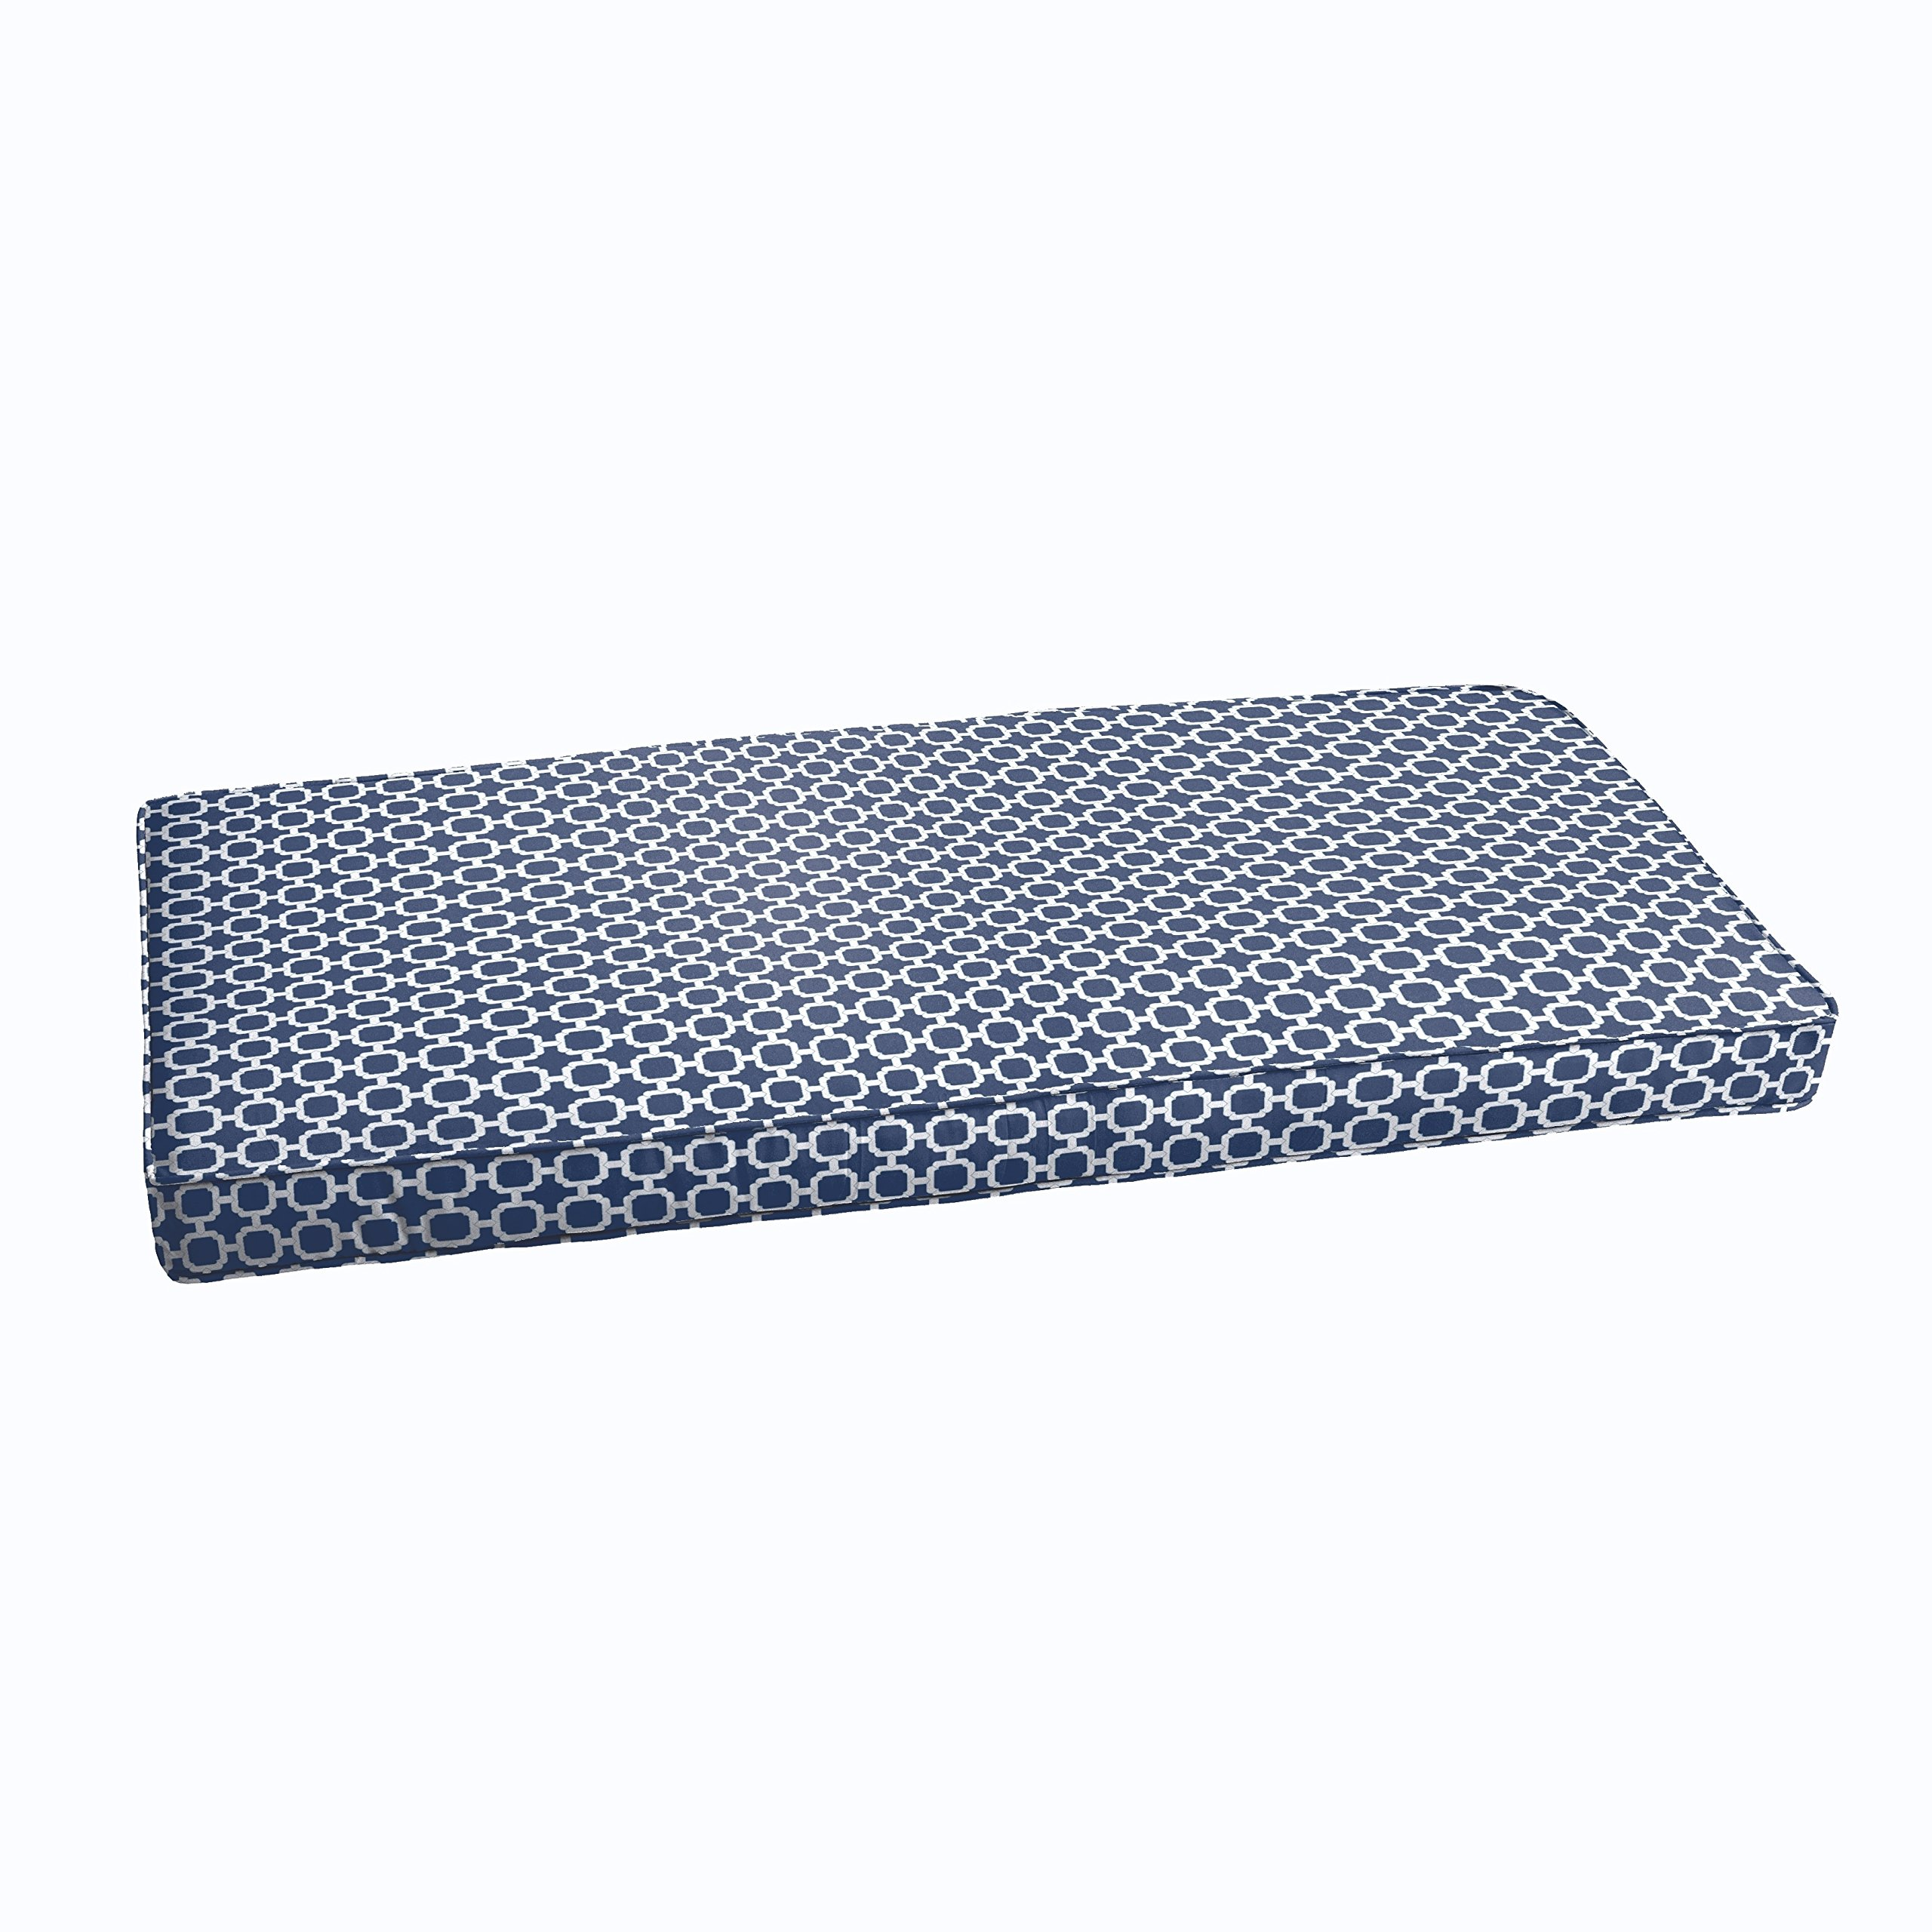 Mozaic Co Navy Chainlink Abstract Indoor/ Outdoor Corded Bench Cushion 60in x 19in x 3in by Mozaic Co